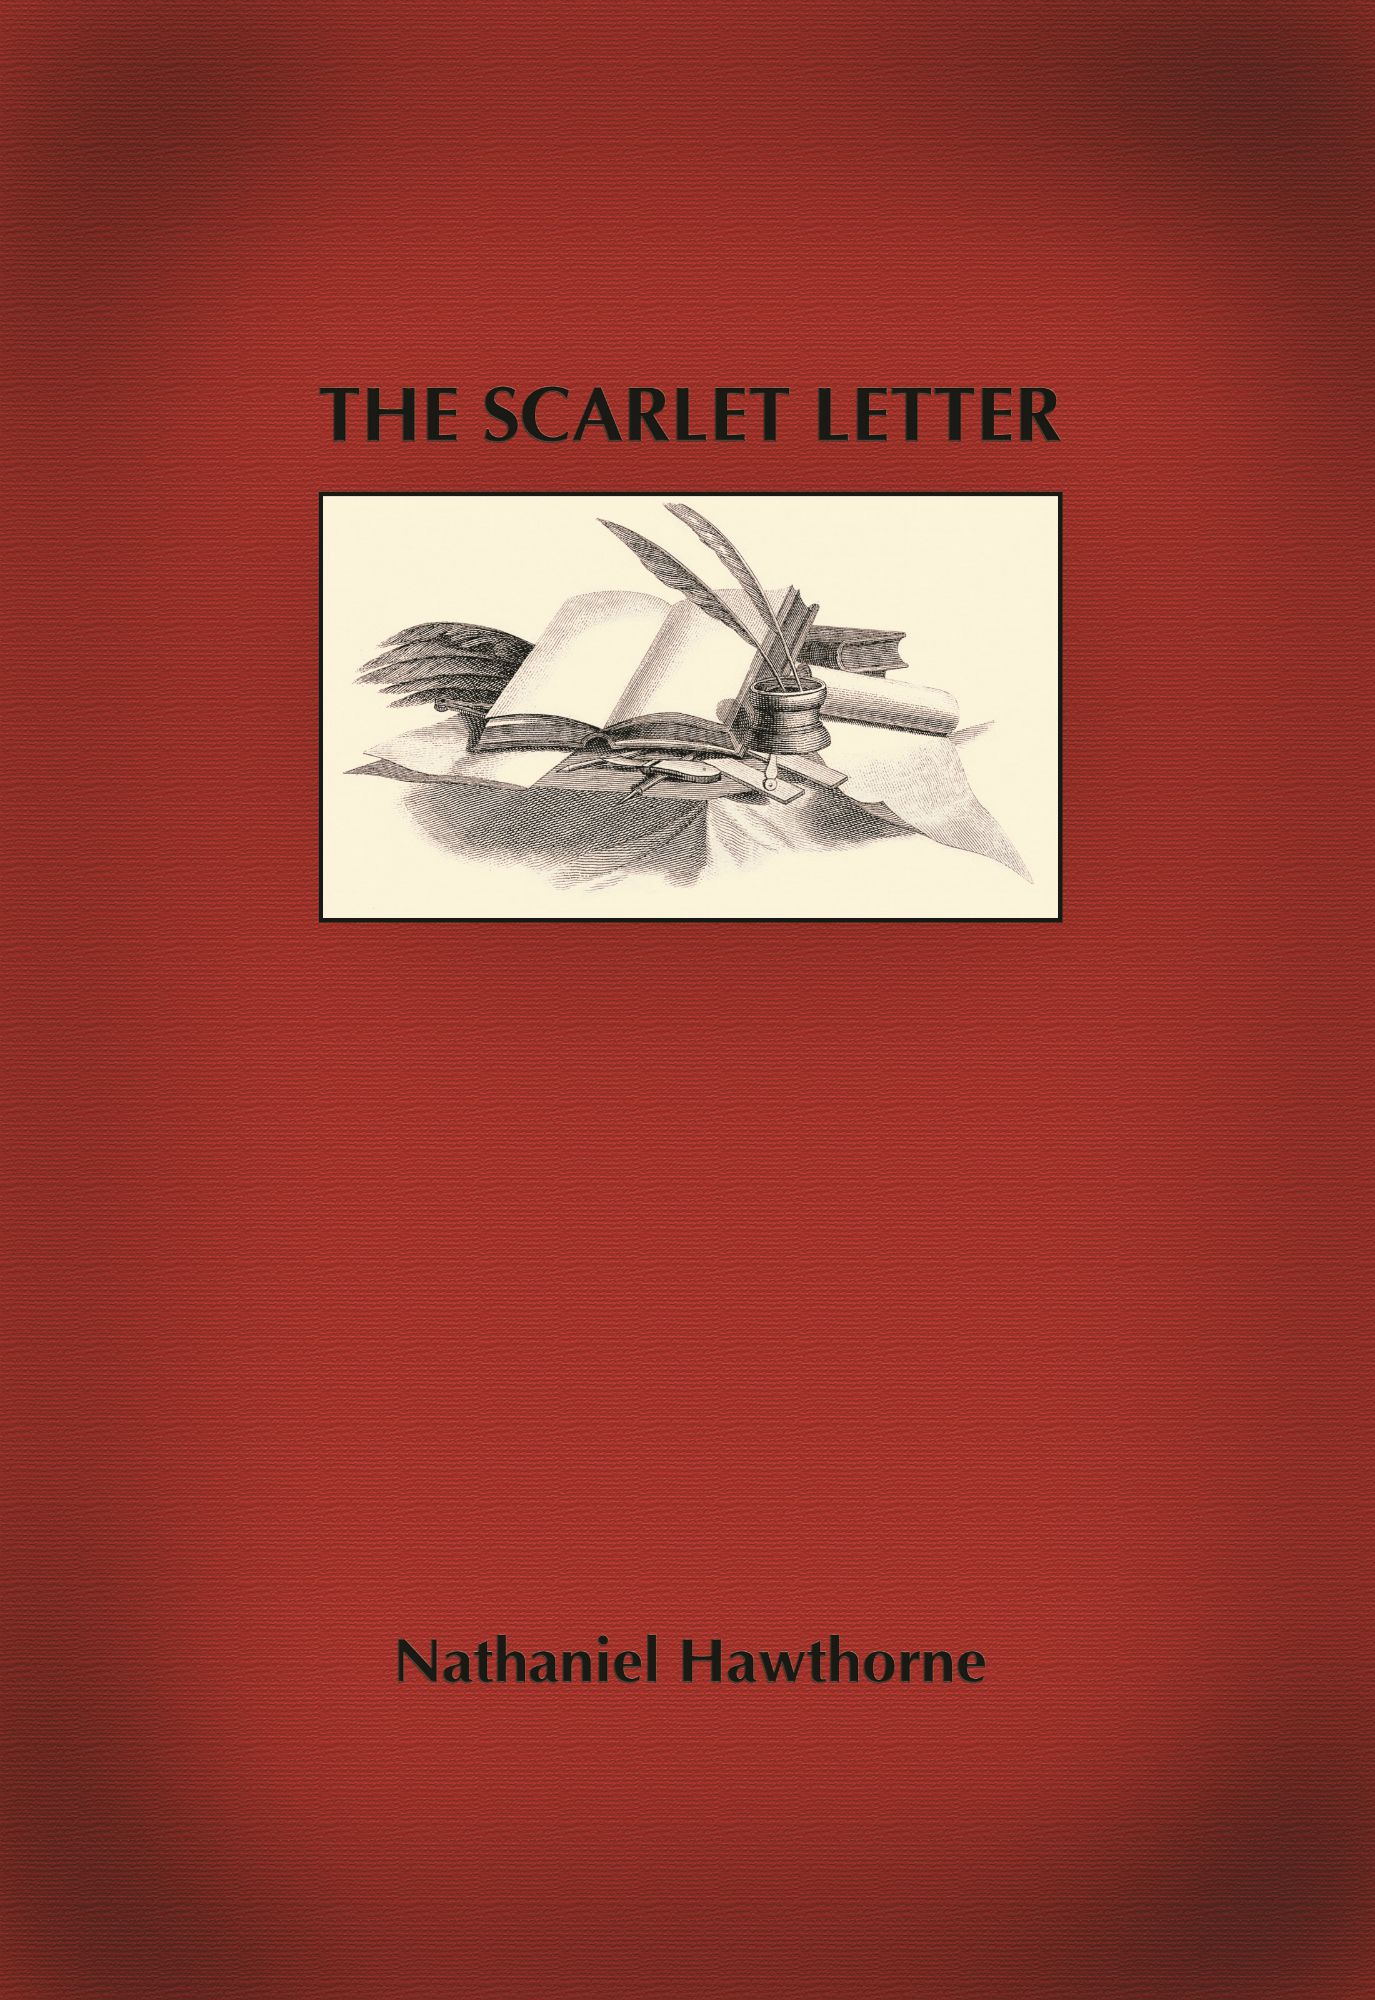 scarlet letter questions These practice questions and answers for the scarlet letter provide an excellent review when prepping for a quiz or test it also makes great ideas for essays.